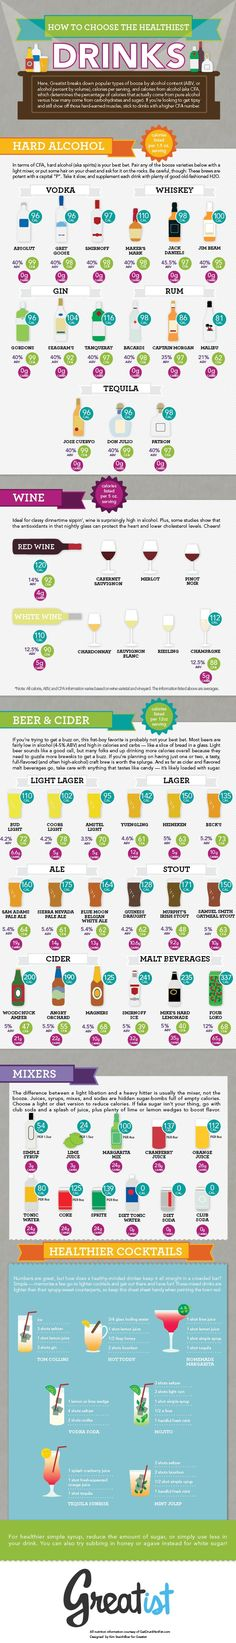 How to Choose the Healthiest Beer, Wine, and Cocktails [INFOGRAPHIC] | Greatist